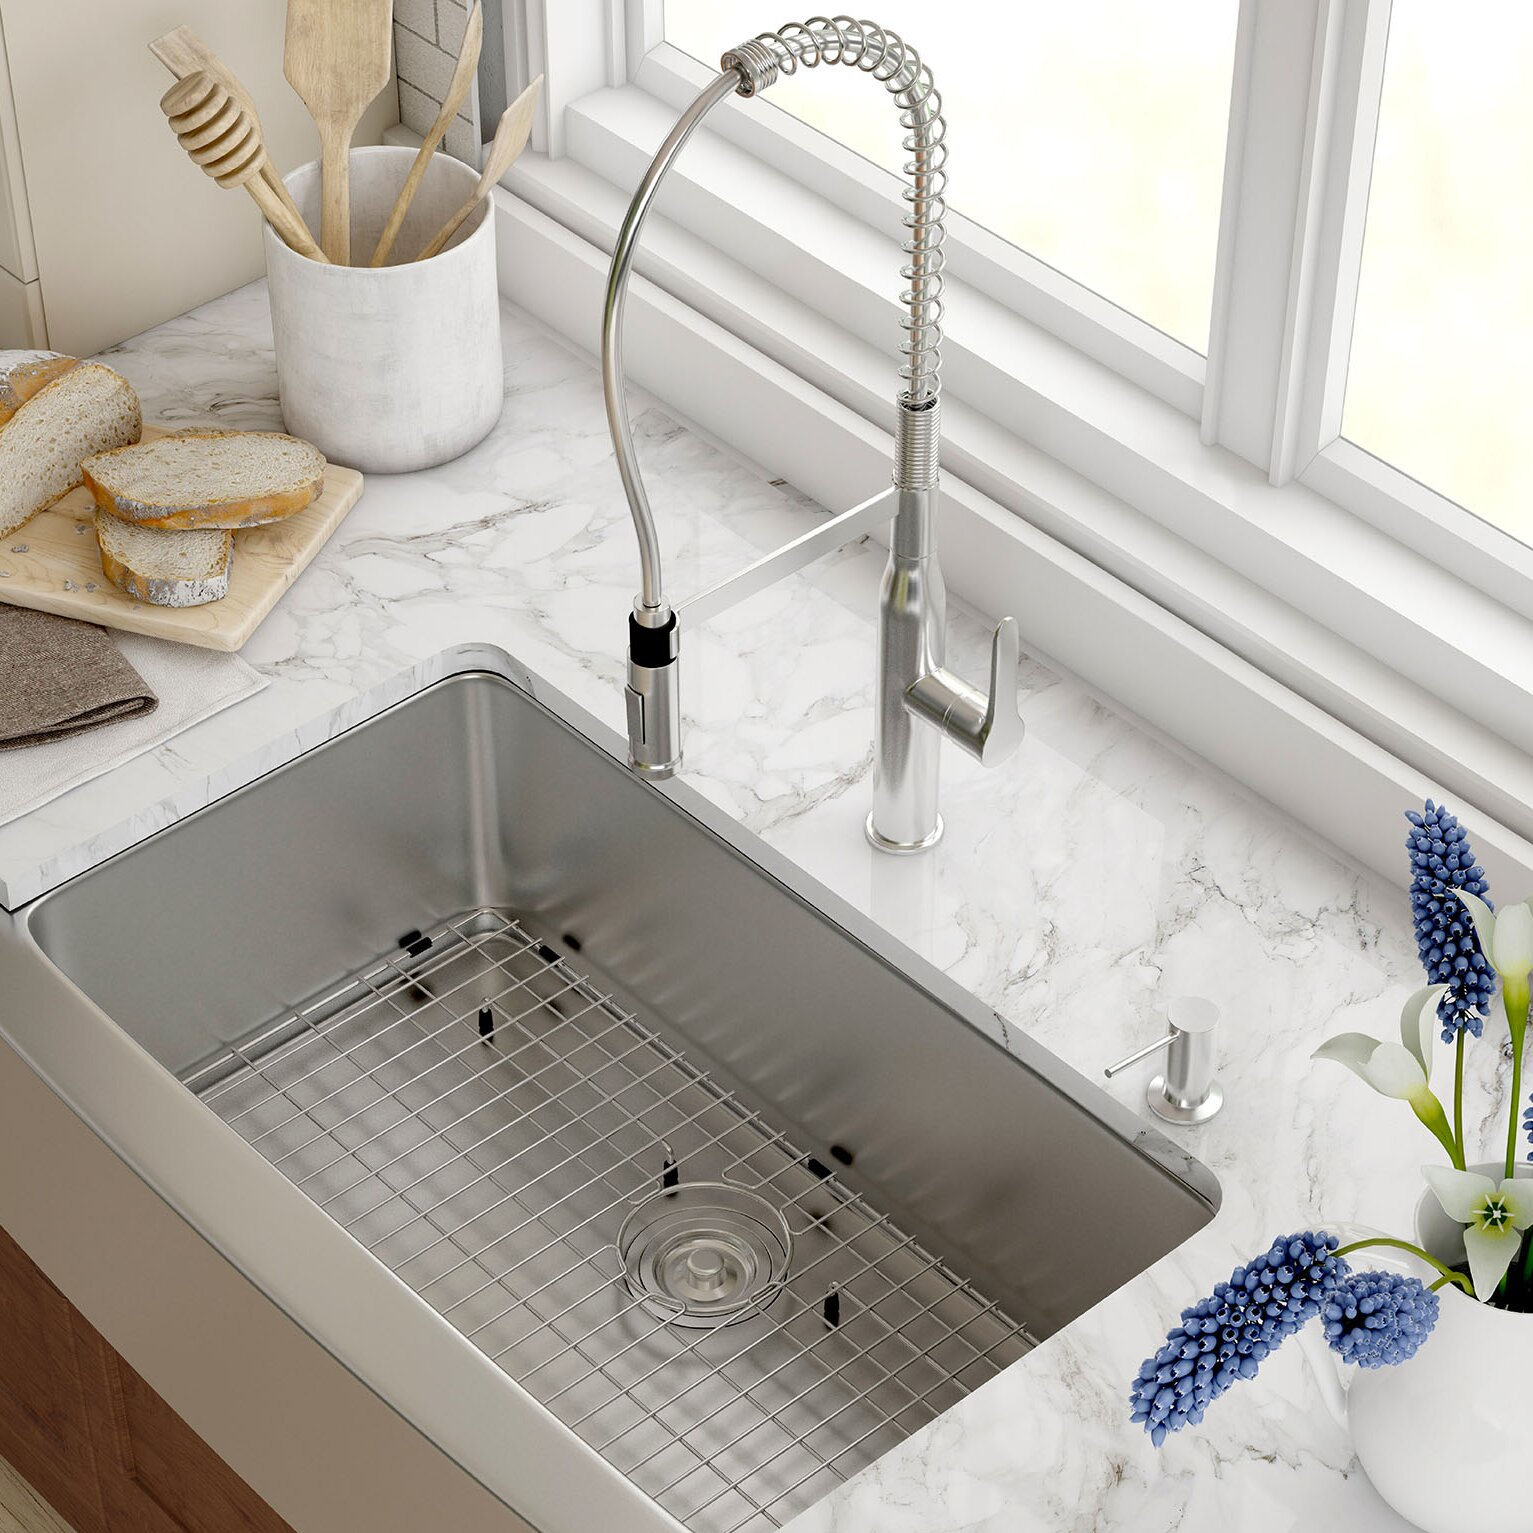 Kitchens With Farmhouse Sinks Kraus Stainless Steel 33 X 2075 Farmhouse Kitchen Sink With